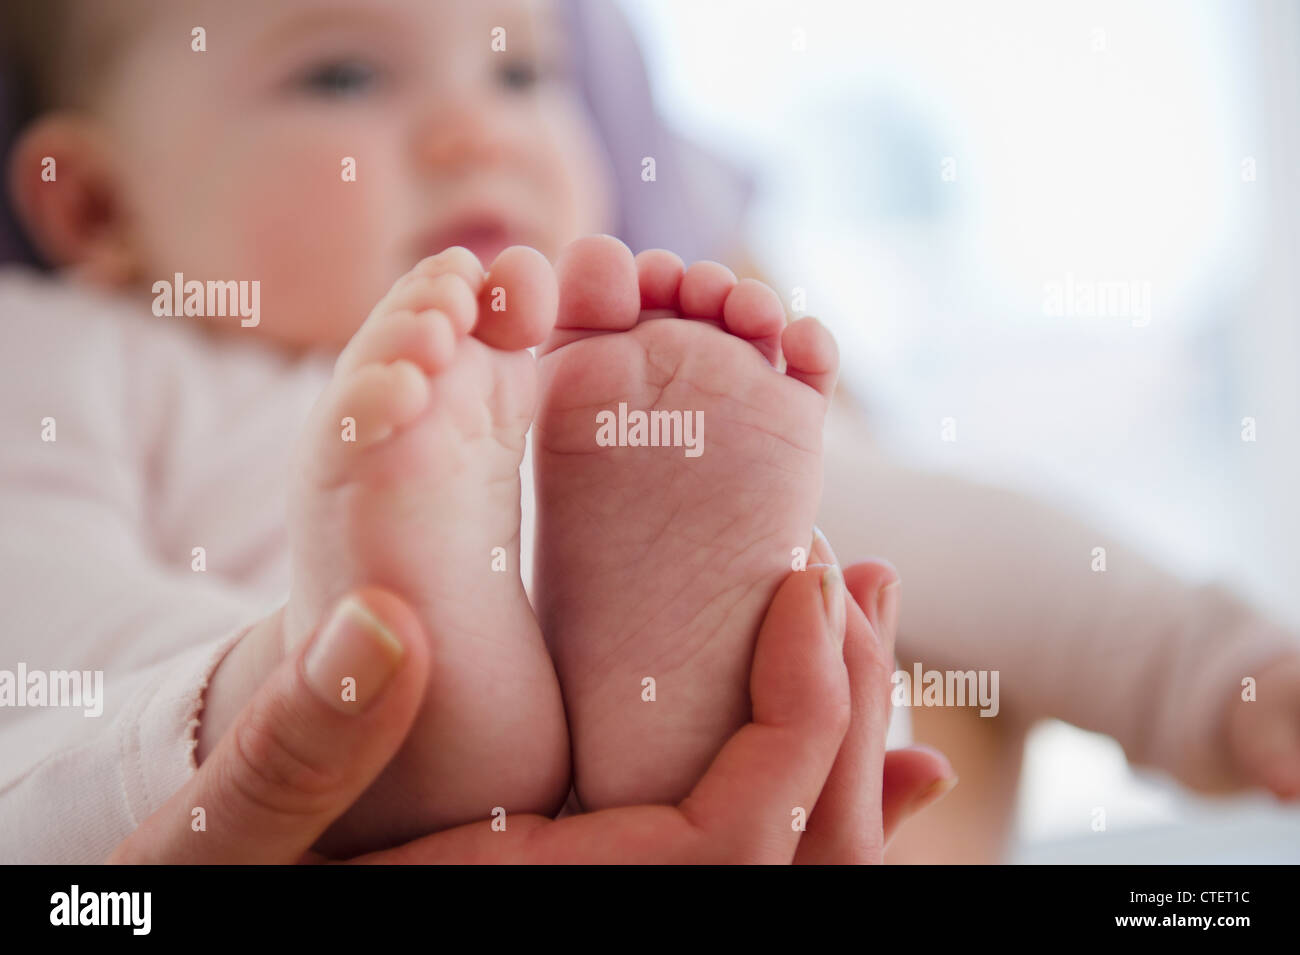 USA, New Jersey, Jersey City, Close up of mother's hand holding baby daughter's (6-11 months) feet Stock Photo